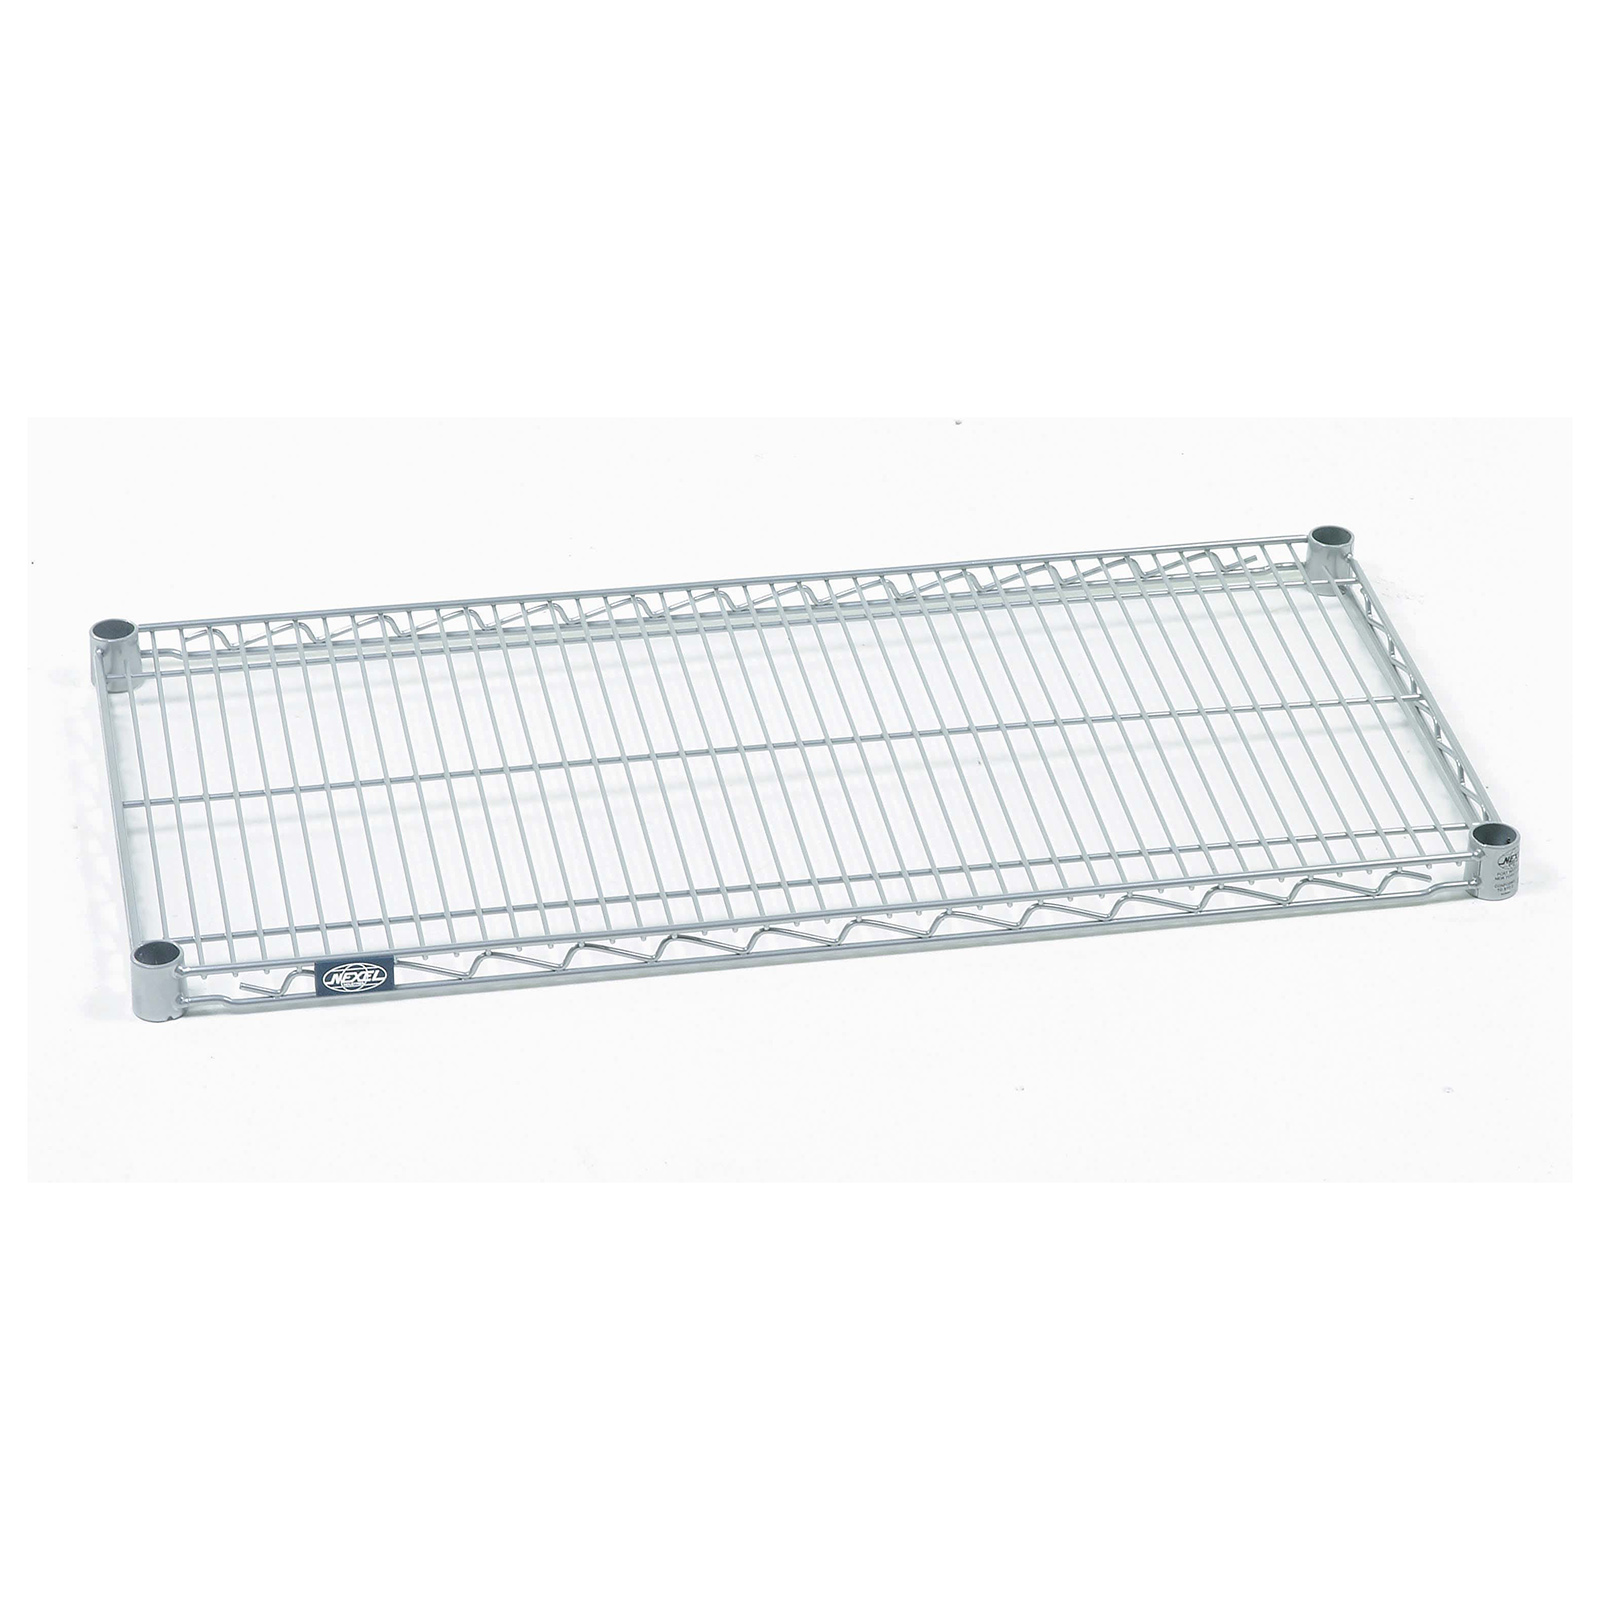 Nexel S1424EP wire shelves